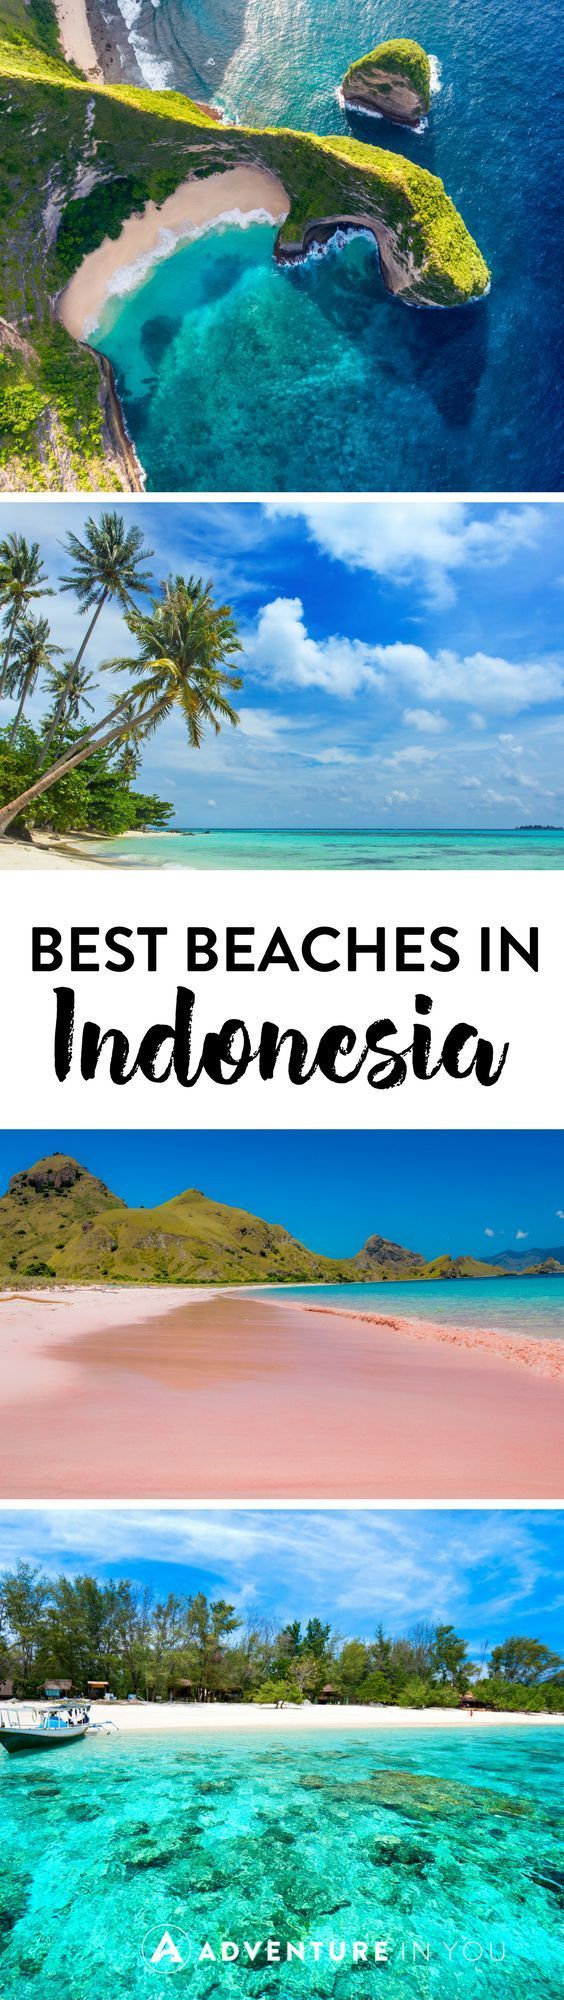 Indonesia Travel | Planning a trip around Indonesia? Check out our list of the best beaches in Bali, Java, all the way to Sumatra!